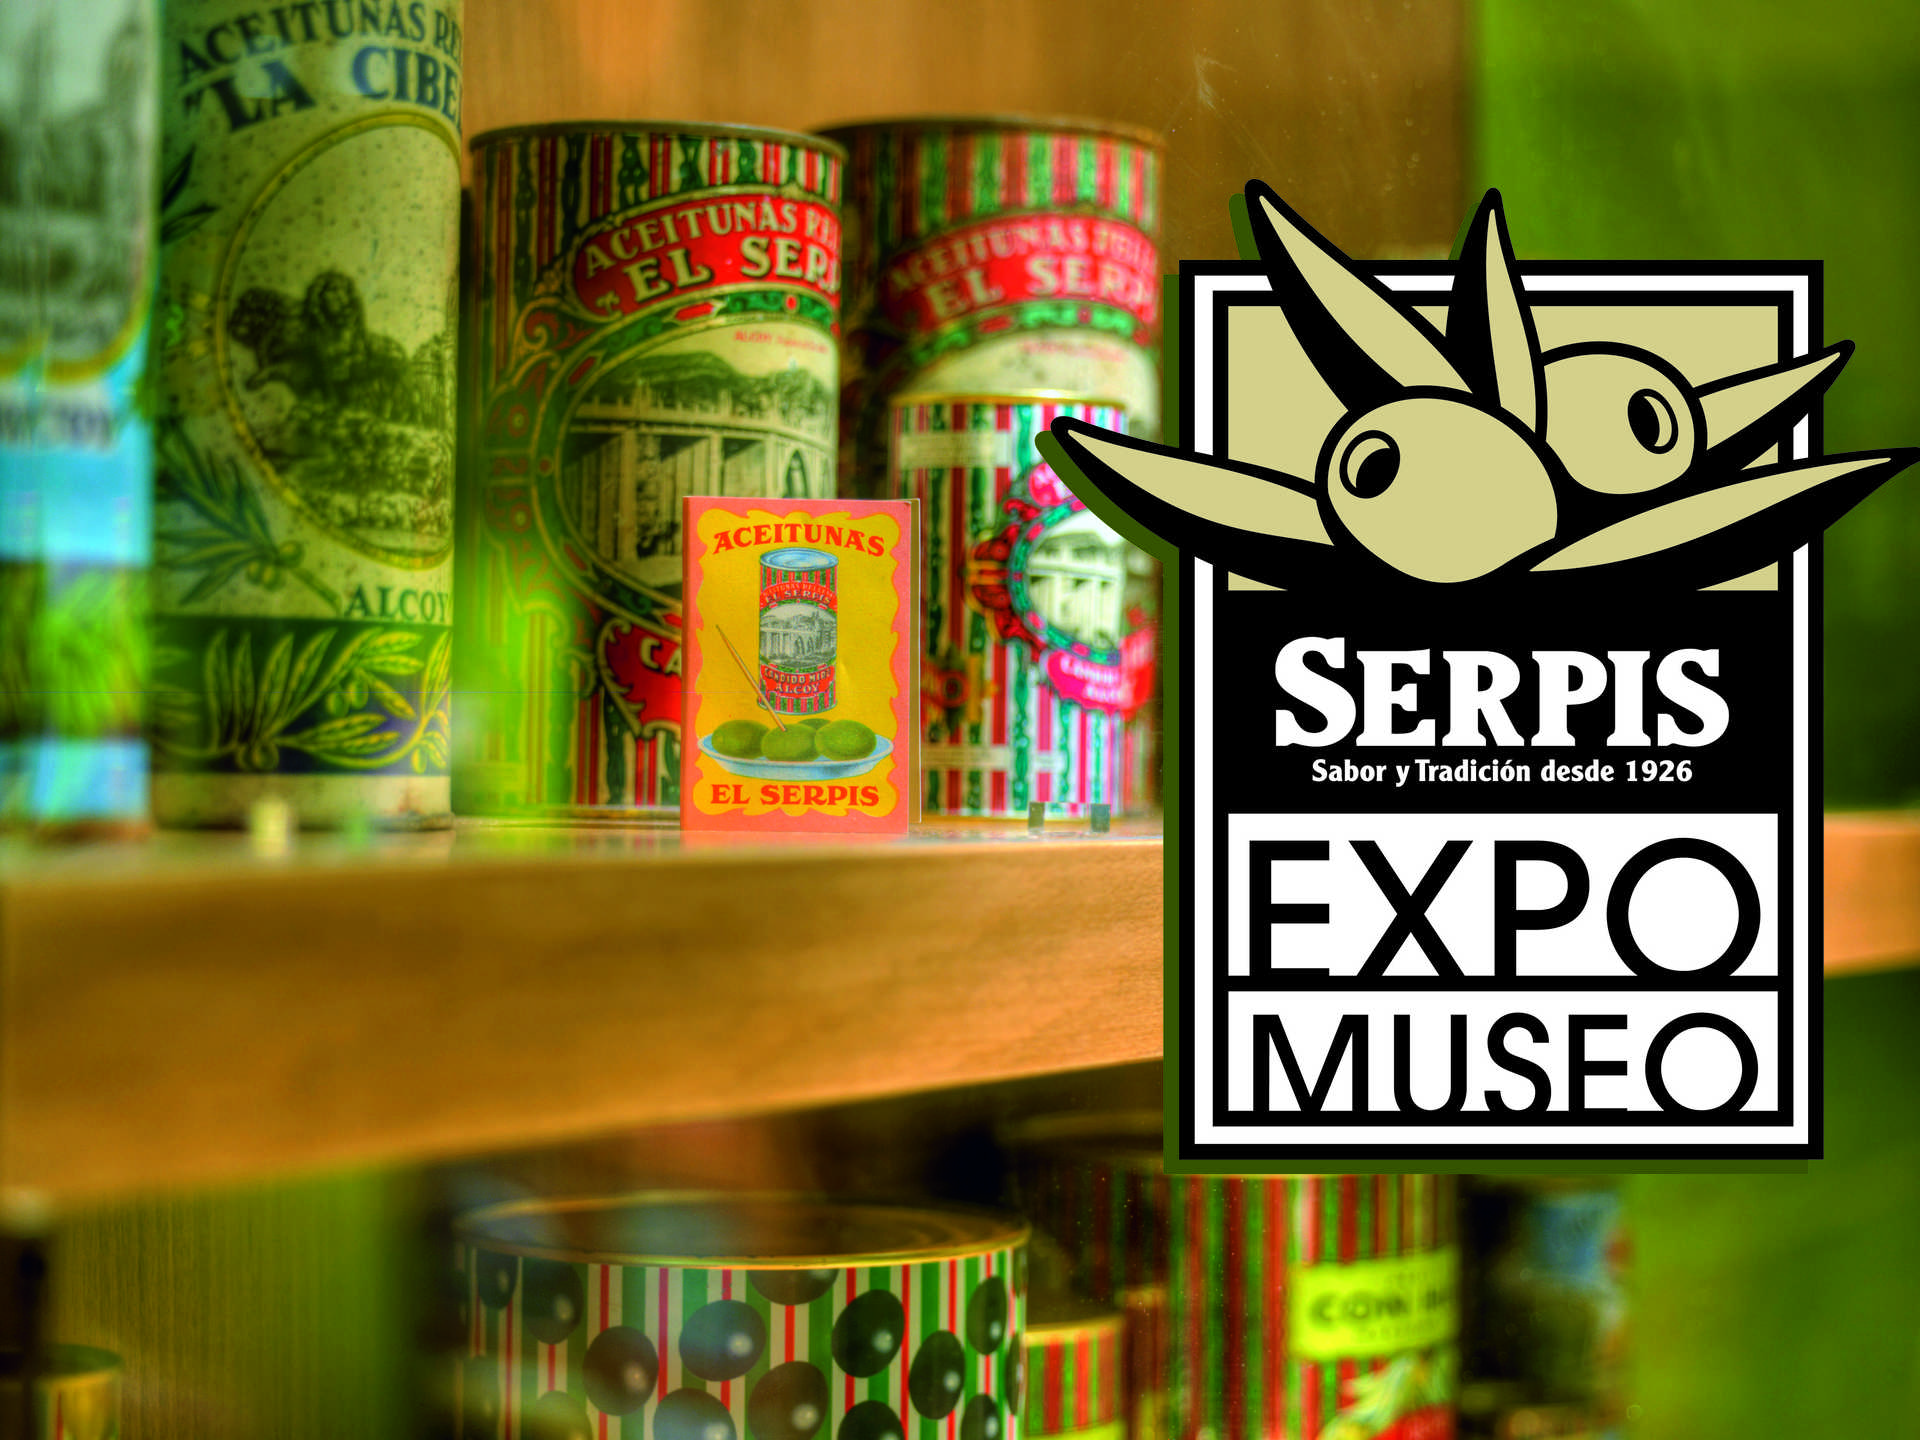 Expo Museo Serpis